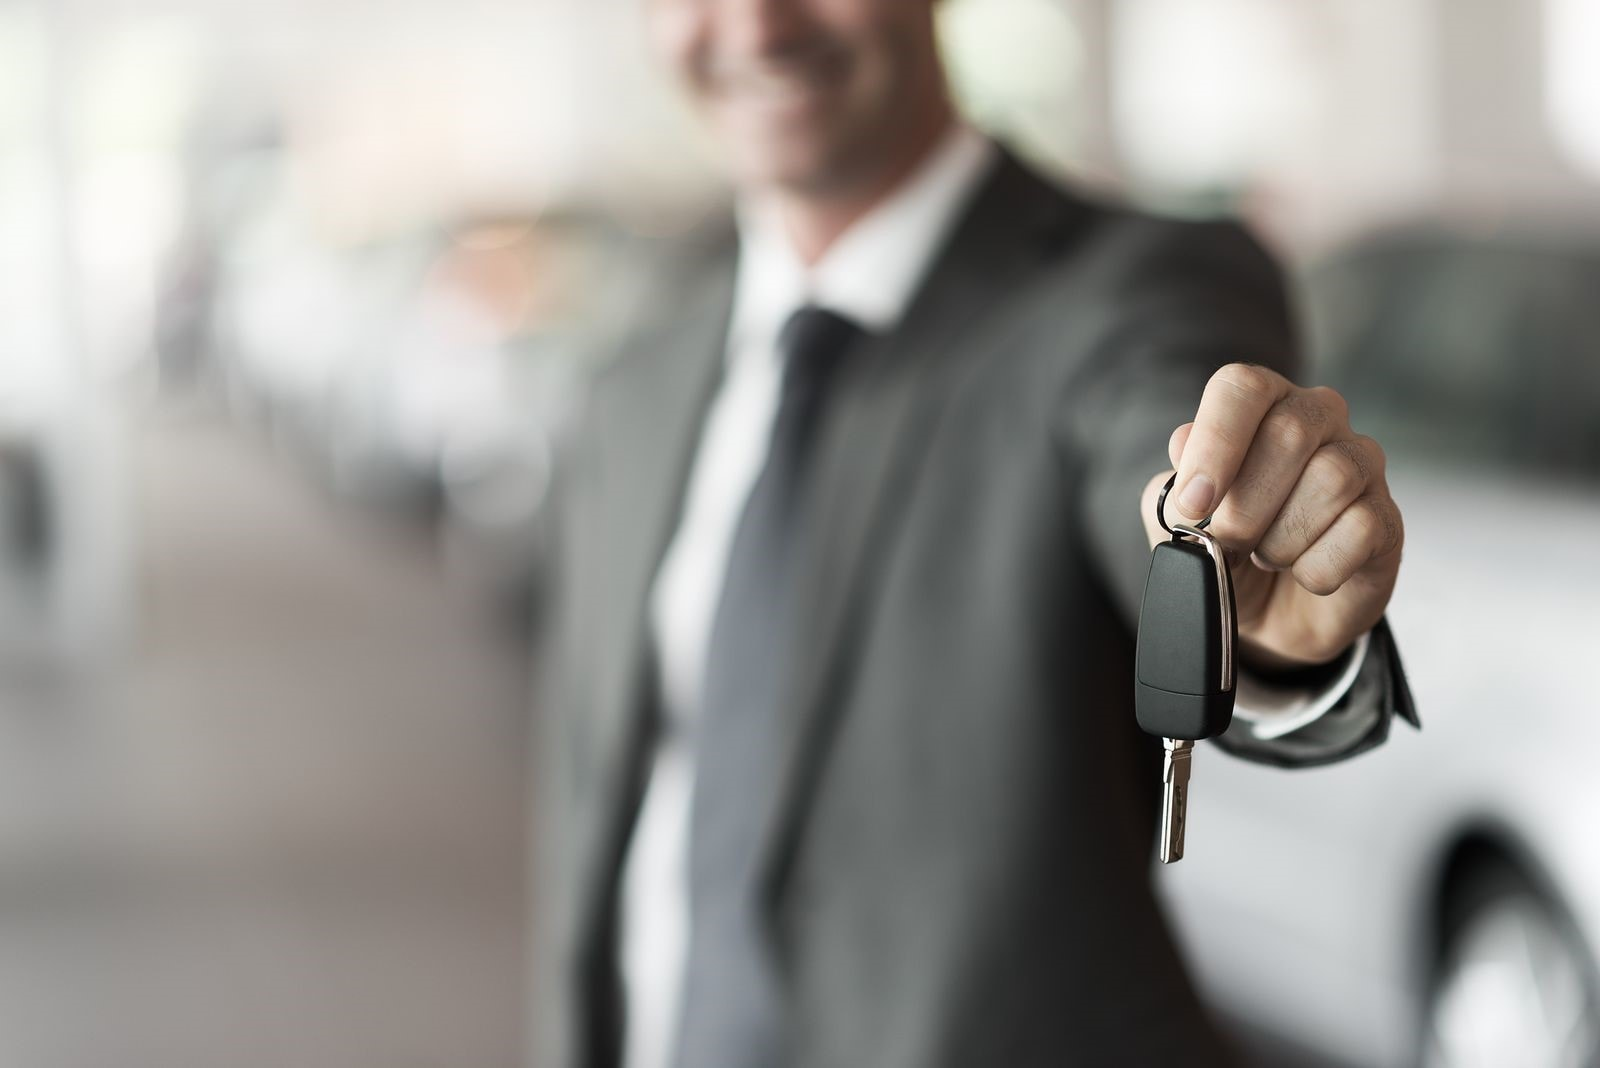 Buying Your First Car: It Takes More than Just Perusing Cars for Sale